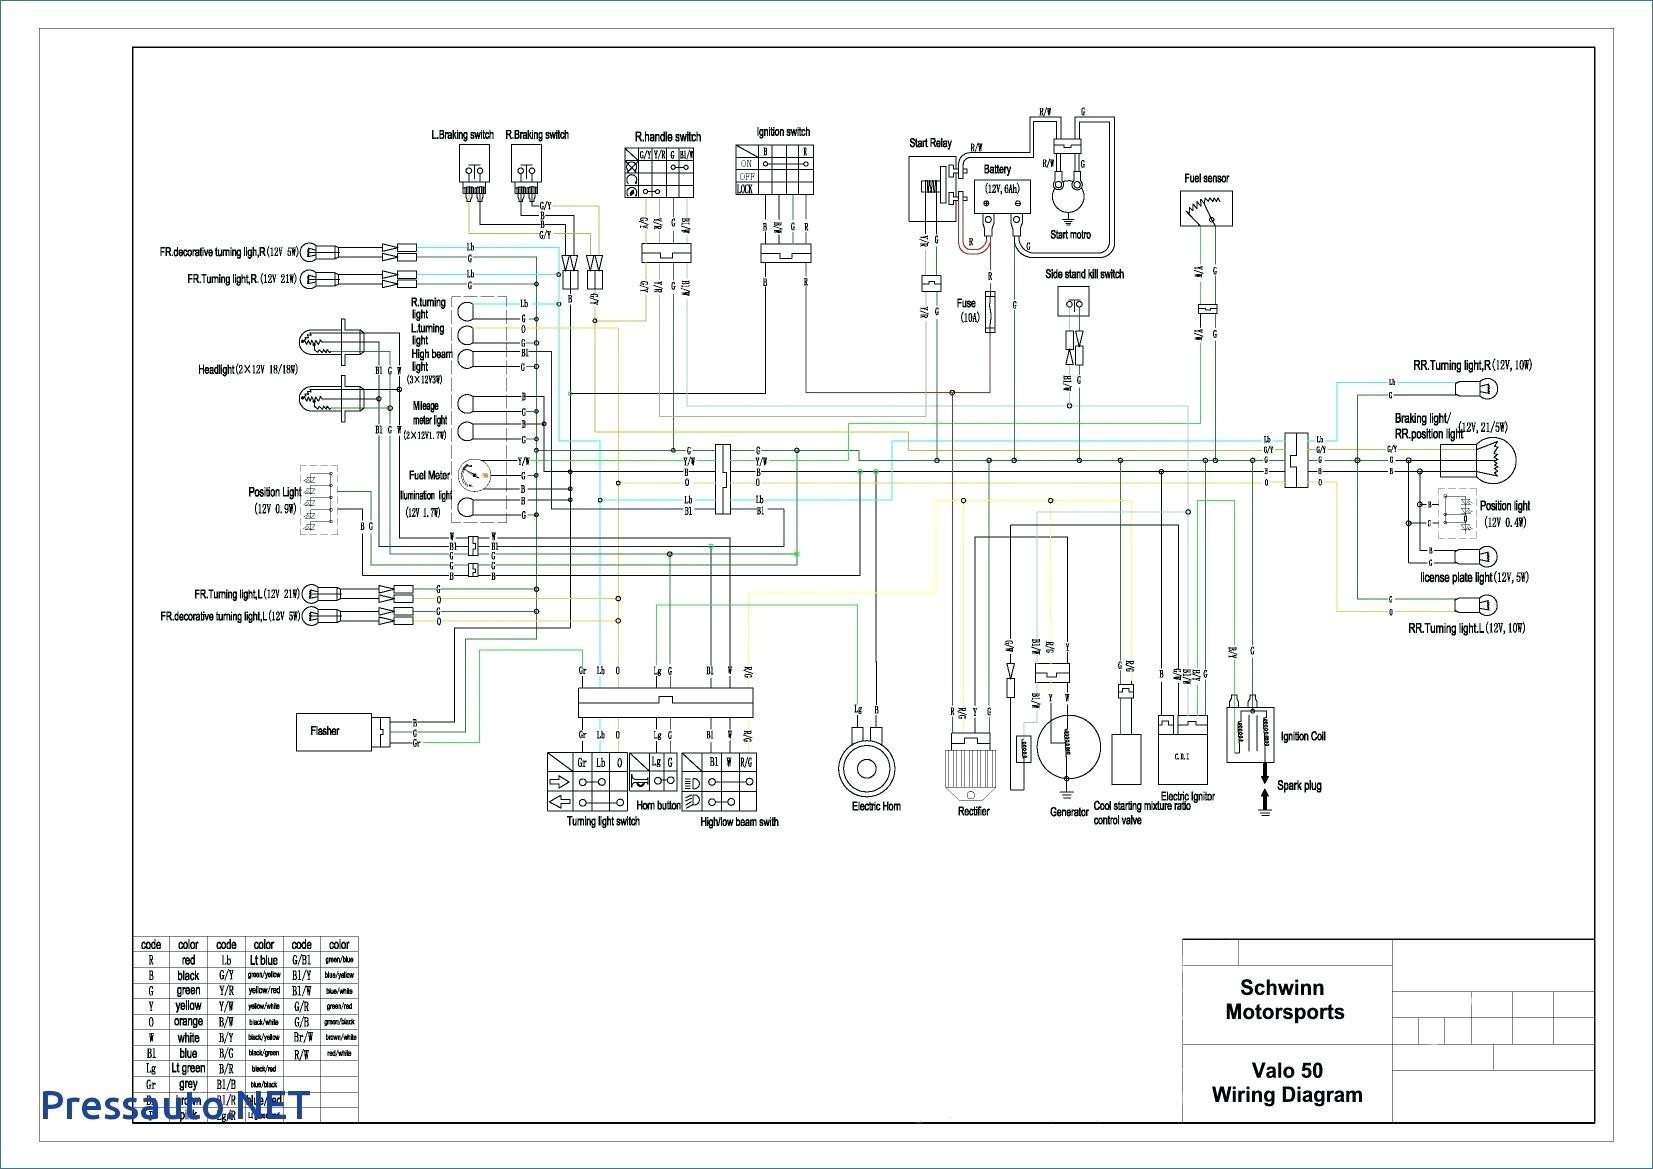 Wiring Diagram Dish Network 722k Blogs Free Download Schematic Vip722